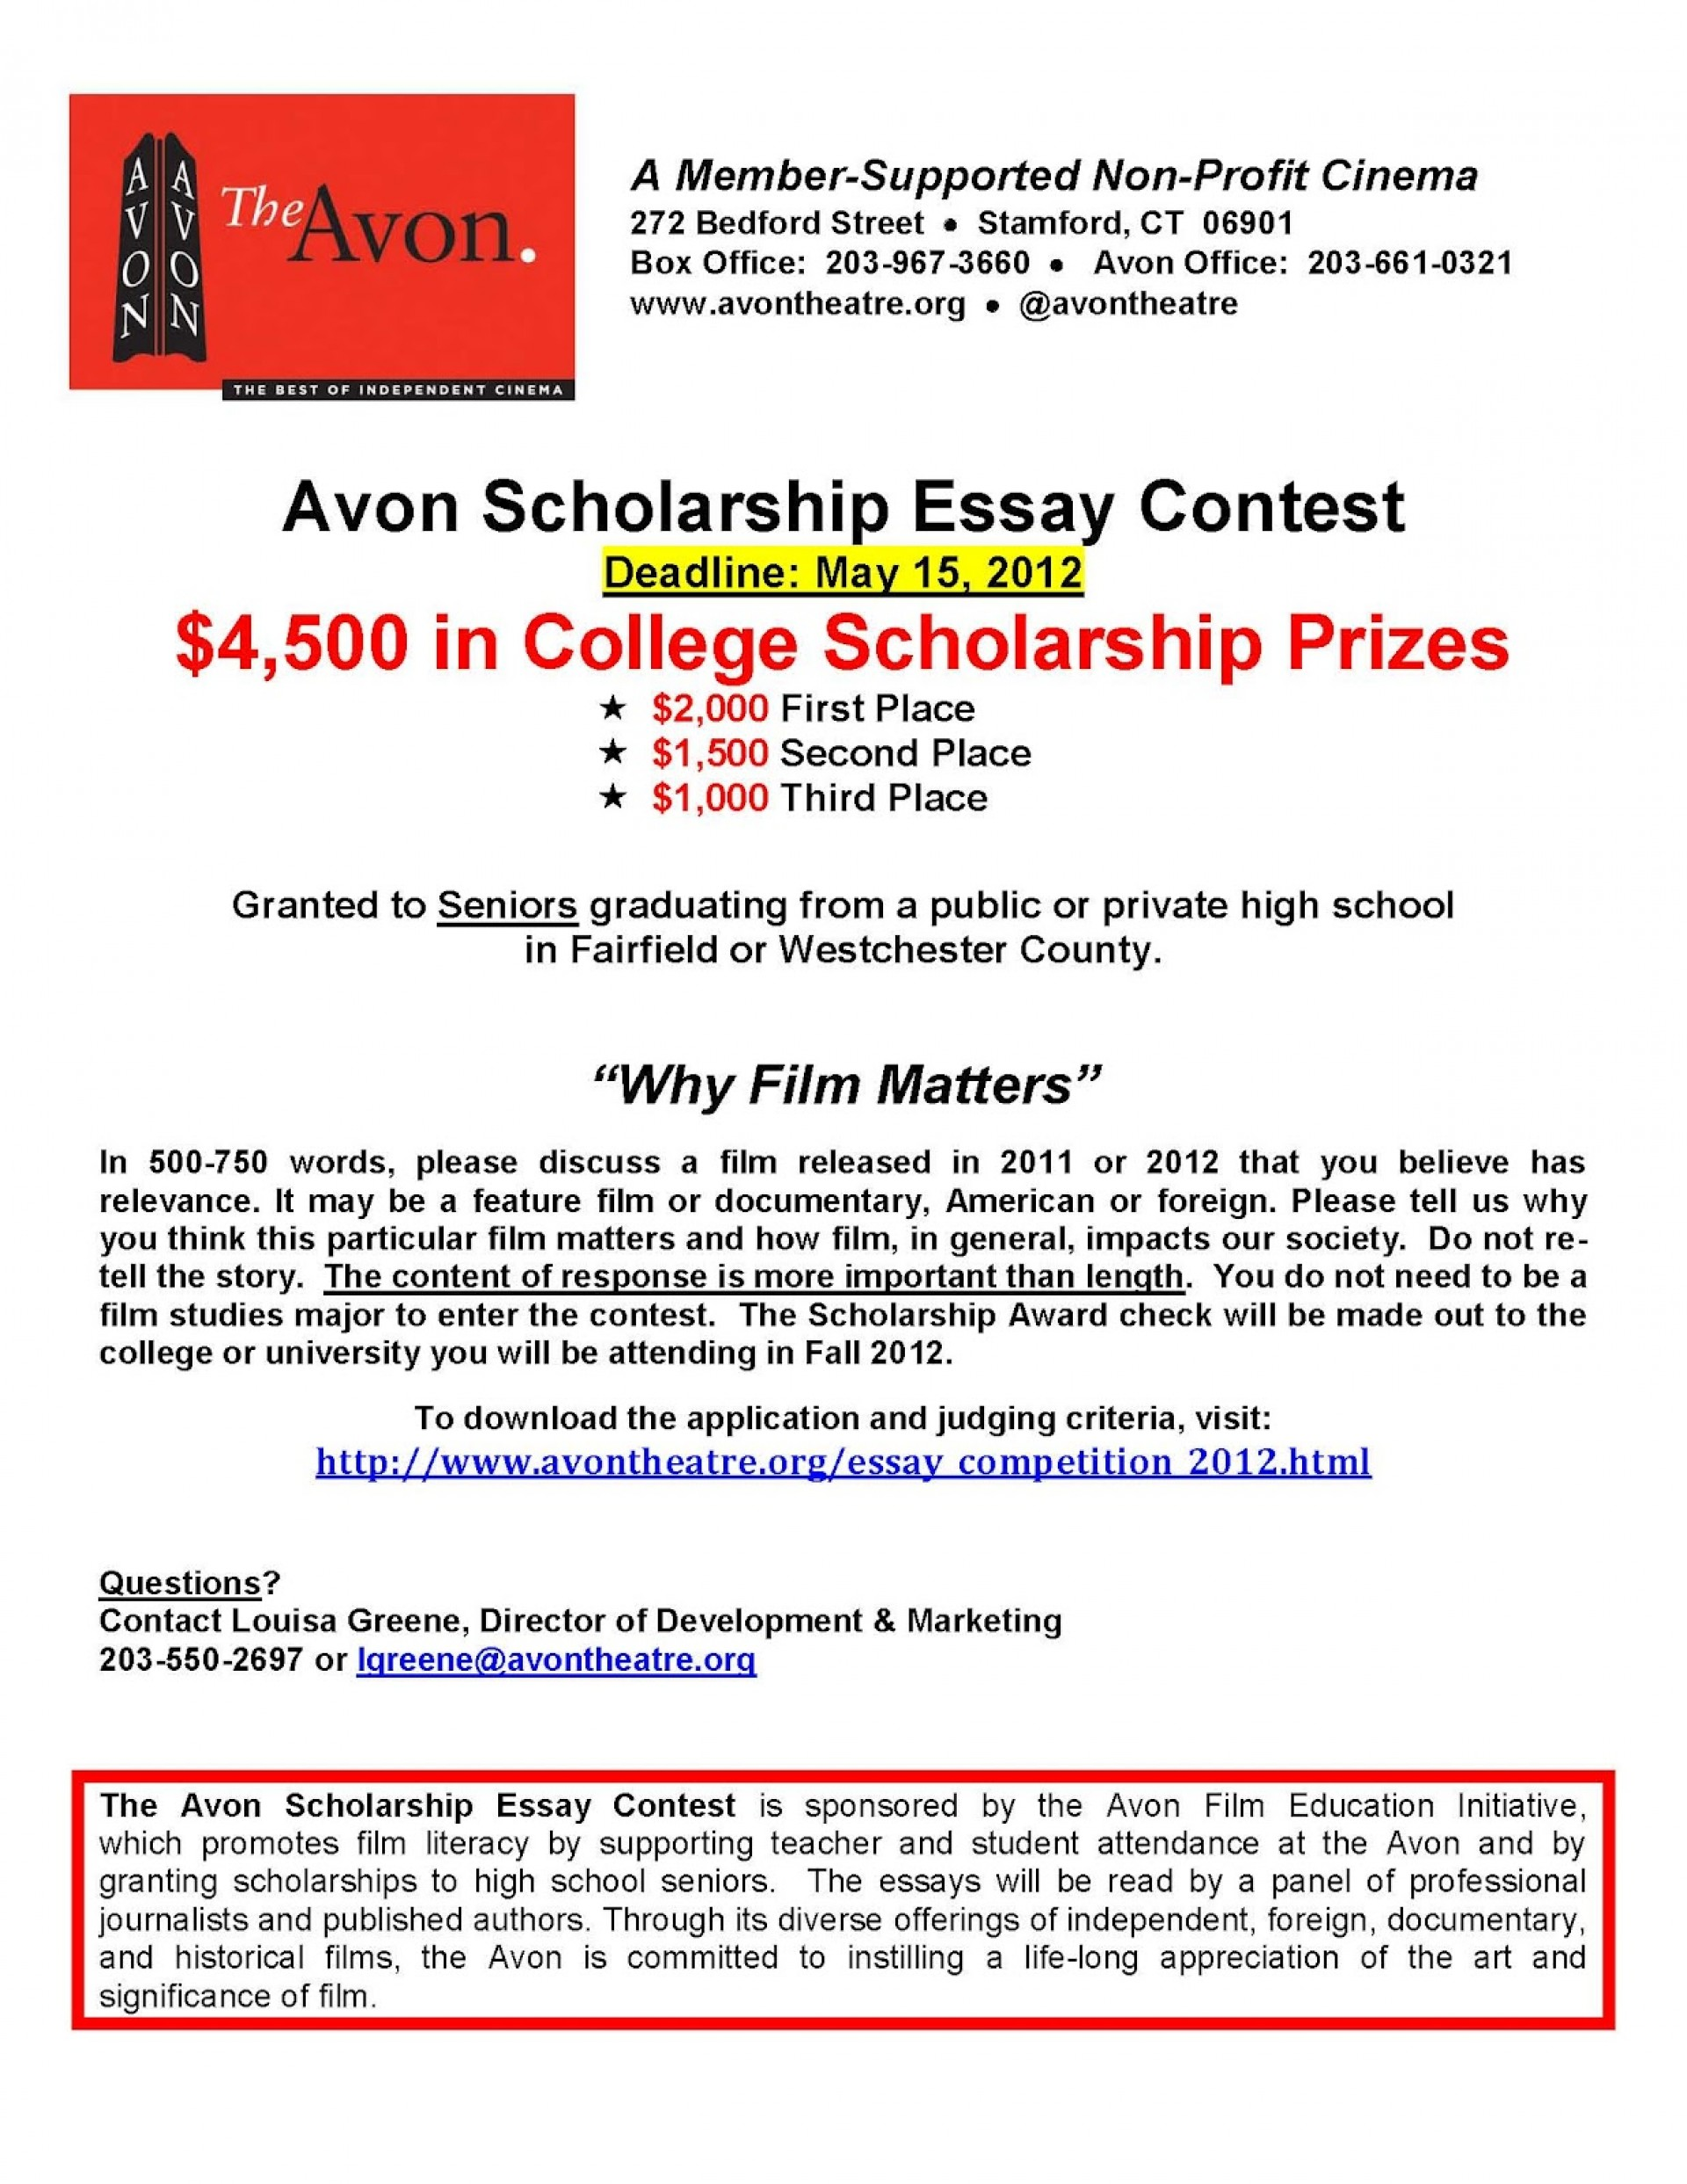 002 No Essay Collegeip Prowler Freeips For High School Seniors Avonscholarshipessaycontest2012 In Texas California Class Of Short Example Wondrous Scholarship Scholarships Freshman 2019 1920